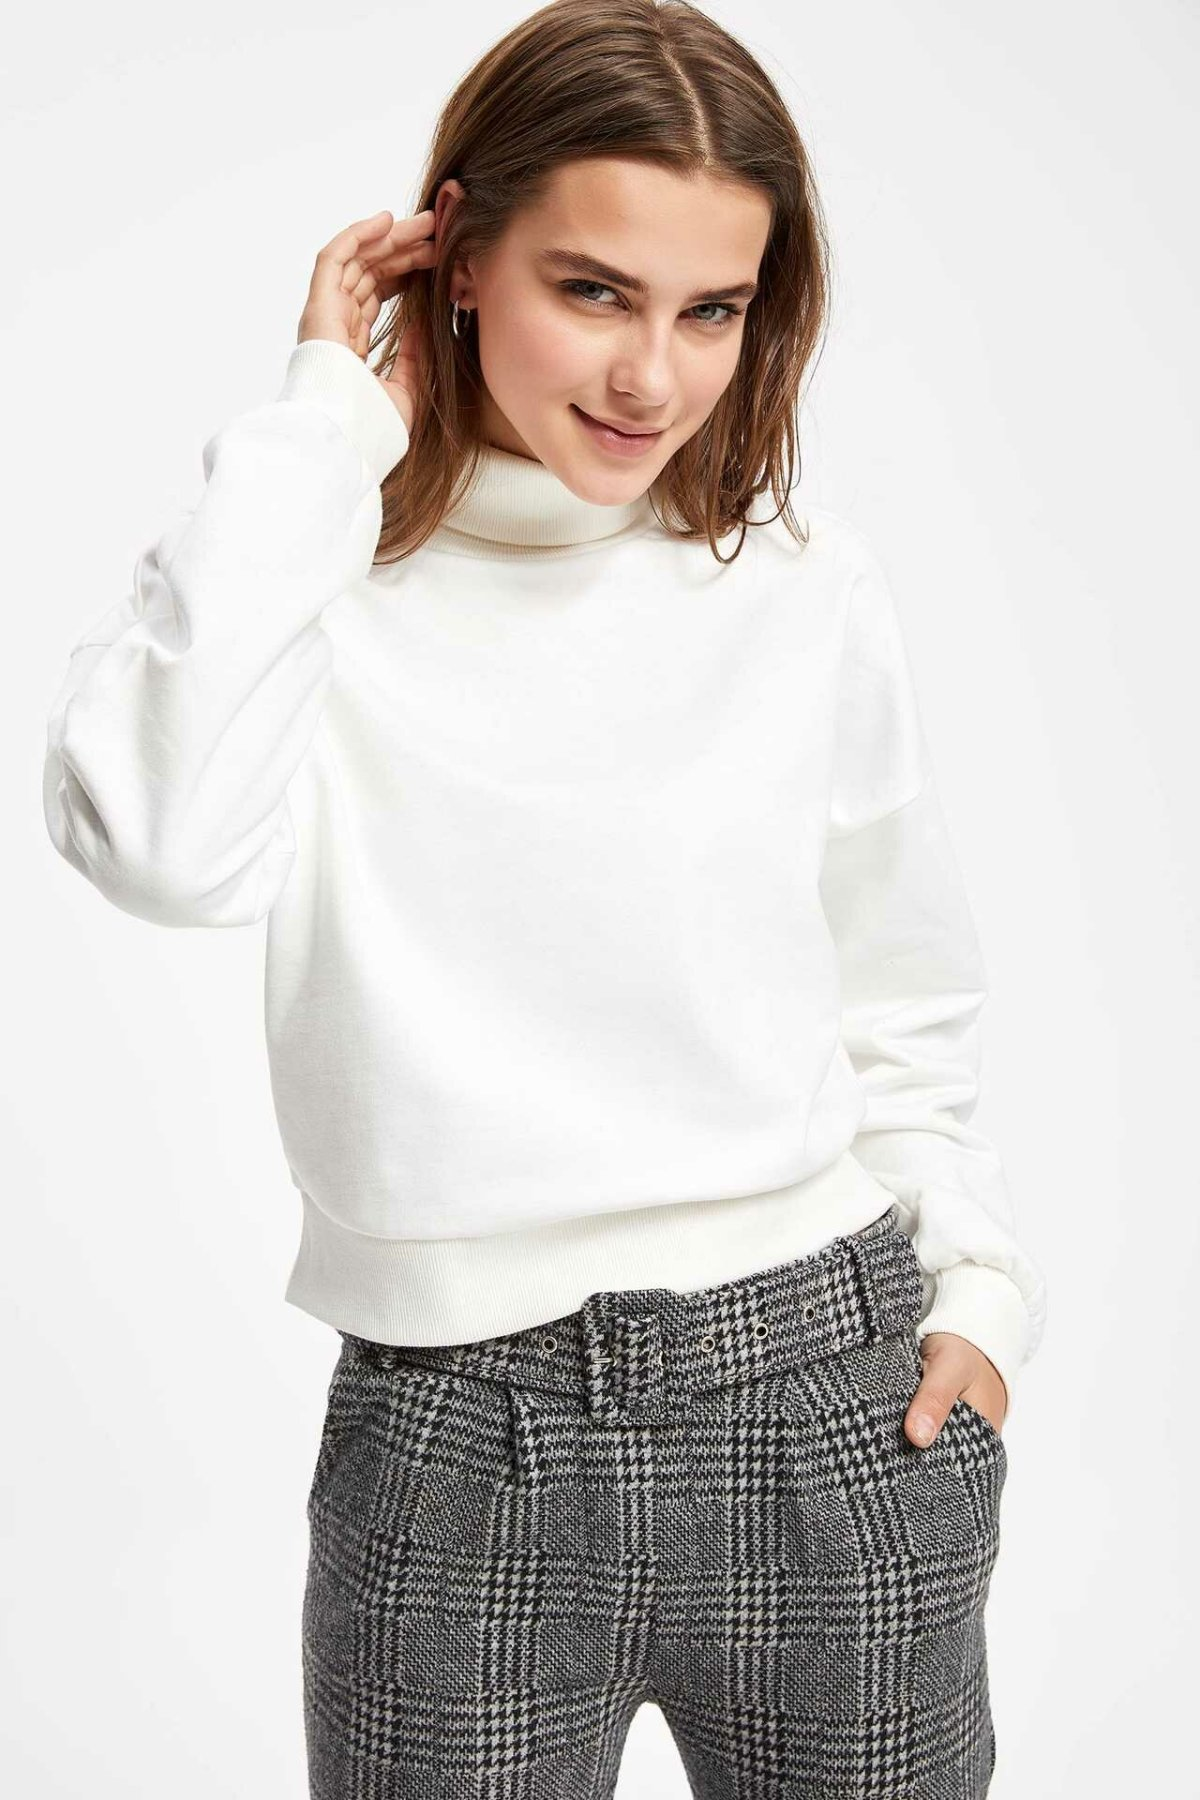 DeFacto Women Fashion Turn-down Collar Knitted Pullovers Short Casual Pullover Long Sleeves Women Tops Autumn New -K7941AZ18CW